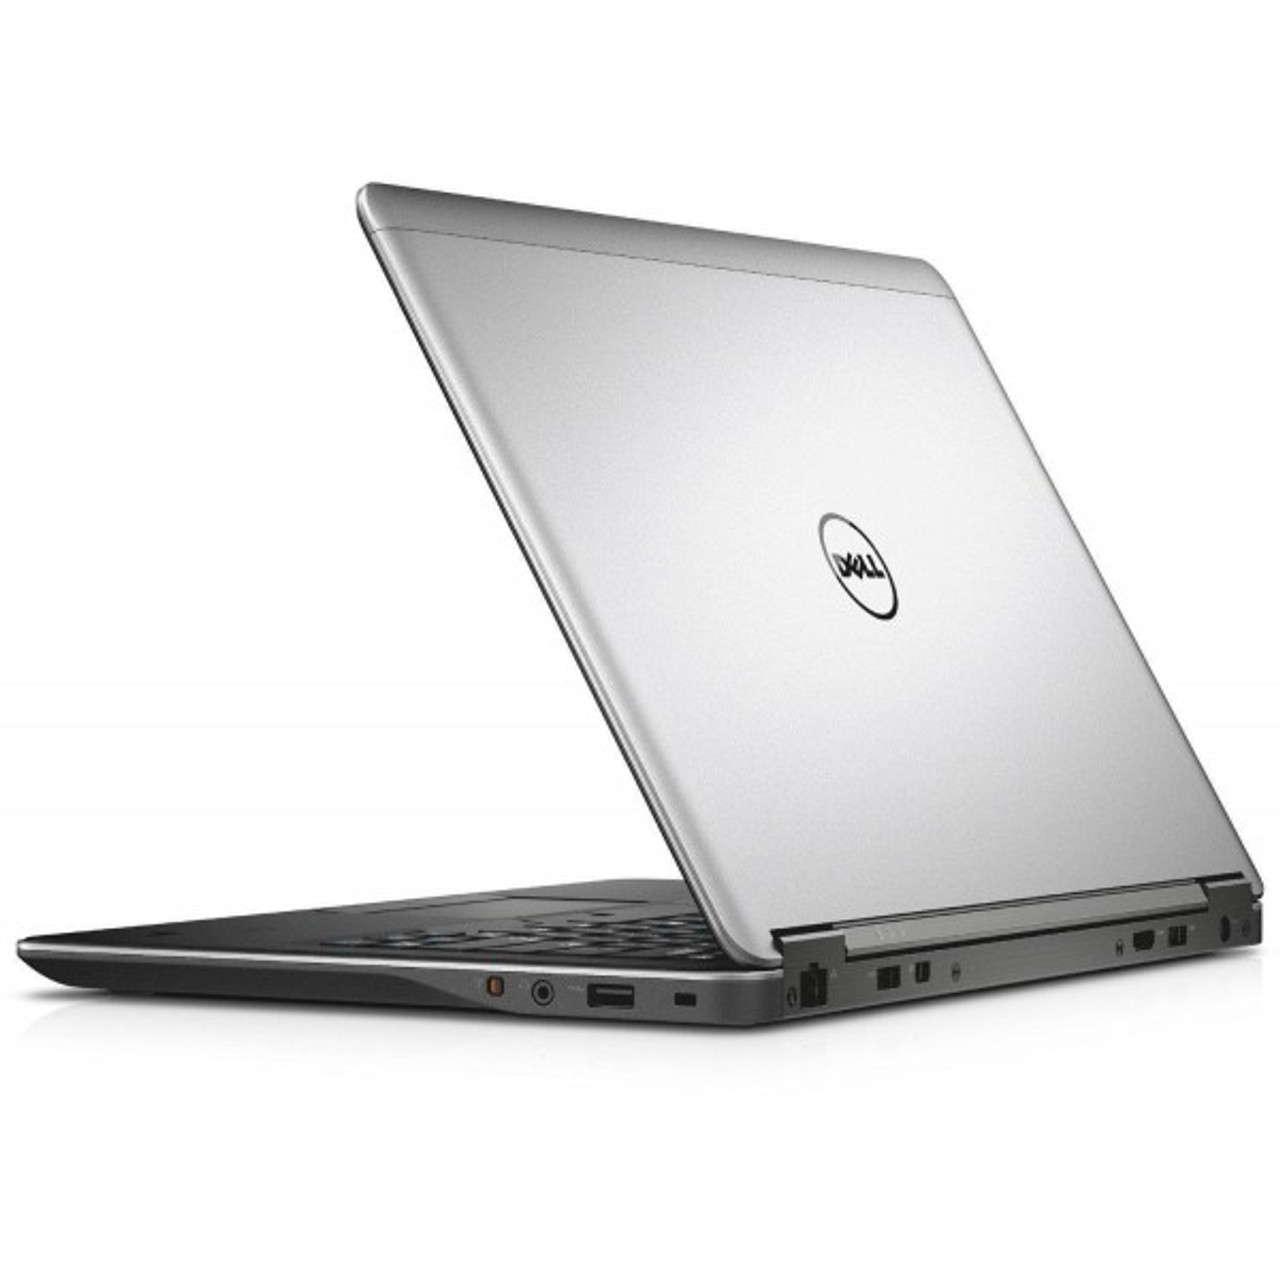 Dell Latitude E7440 Laptop Core i5 1.9GHz, 8GB Ram, 256GB SSD, Windows 10 Pro 64 Ultrabook Notebook